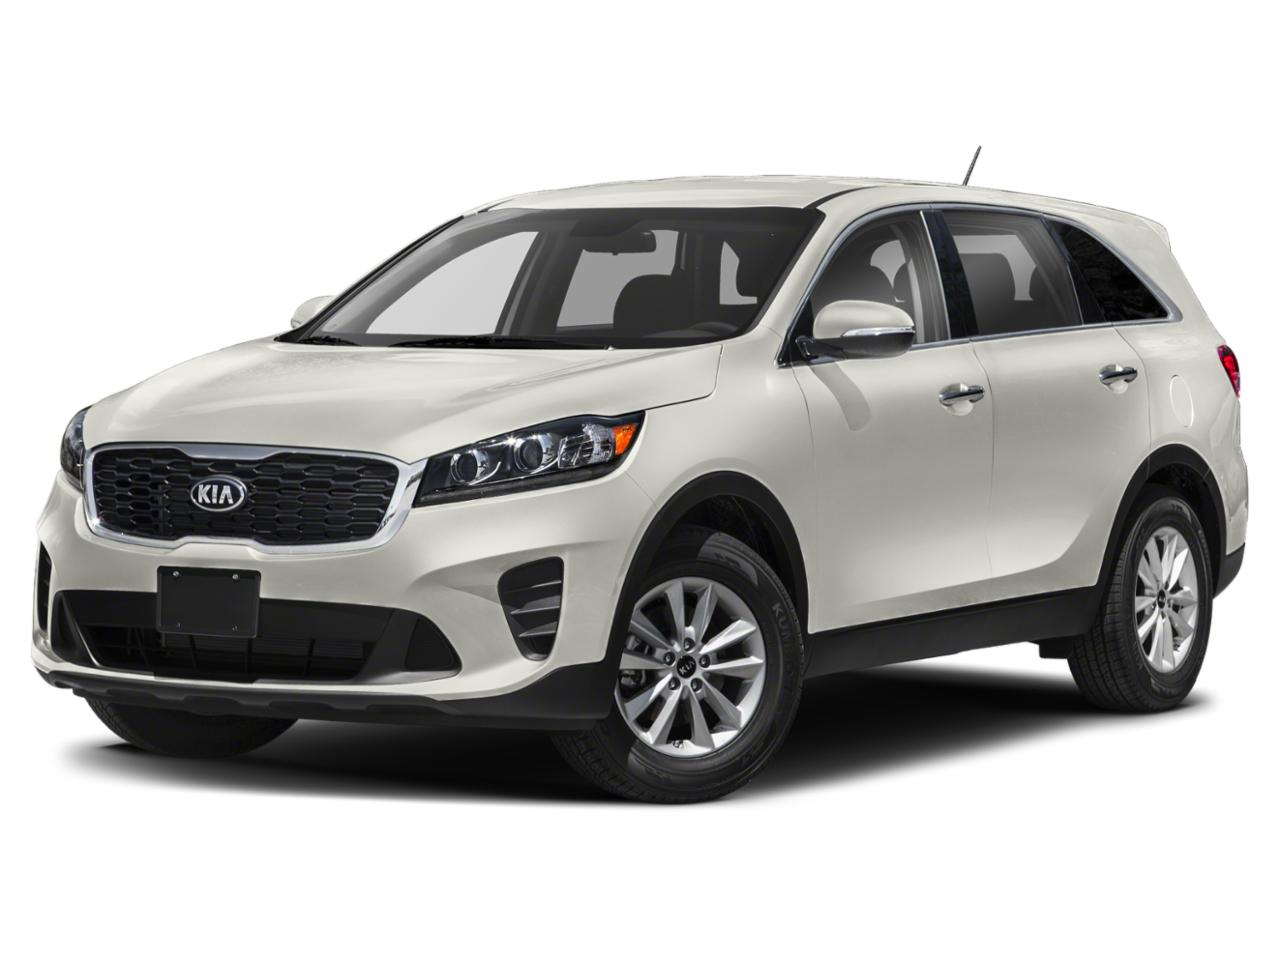 2019 Kia Sorento Vehicle Photo in Portland, OR 97225